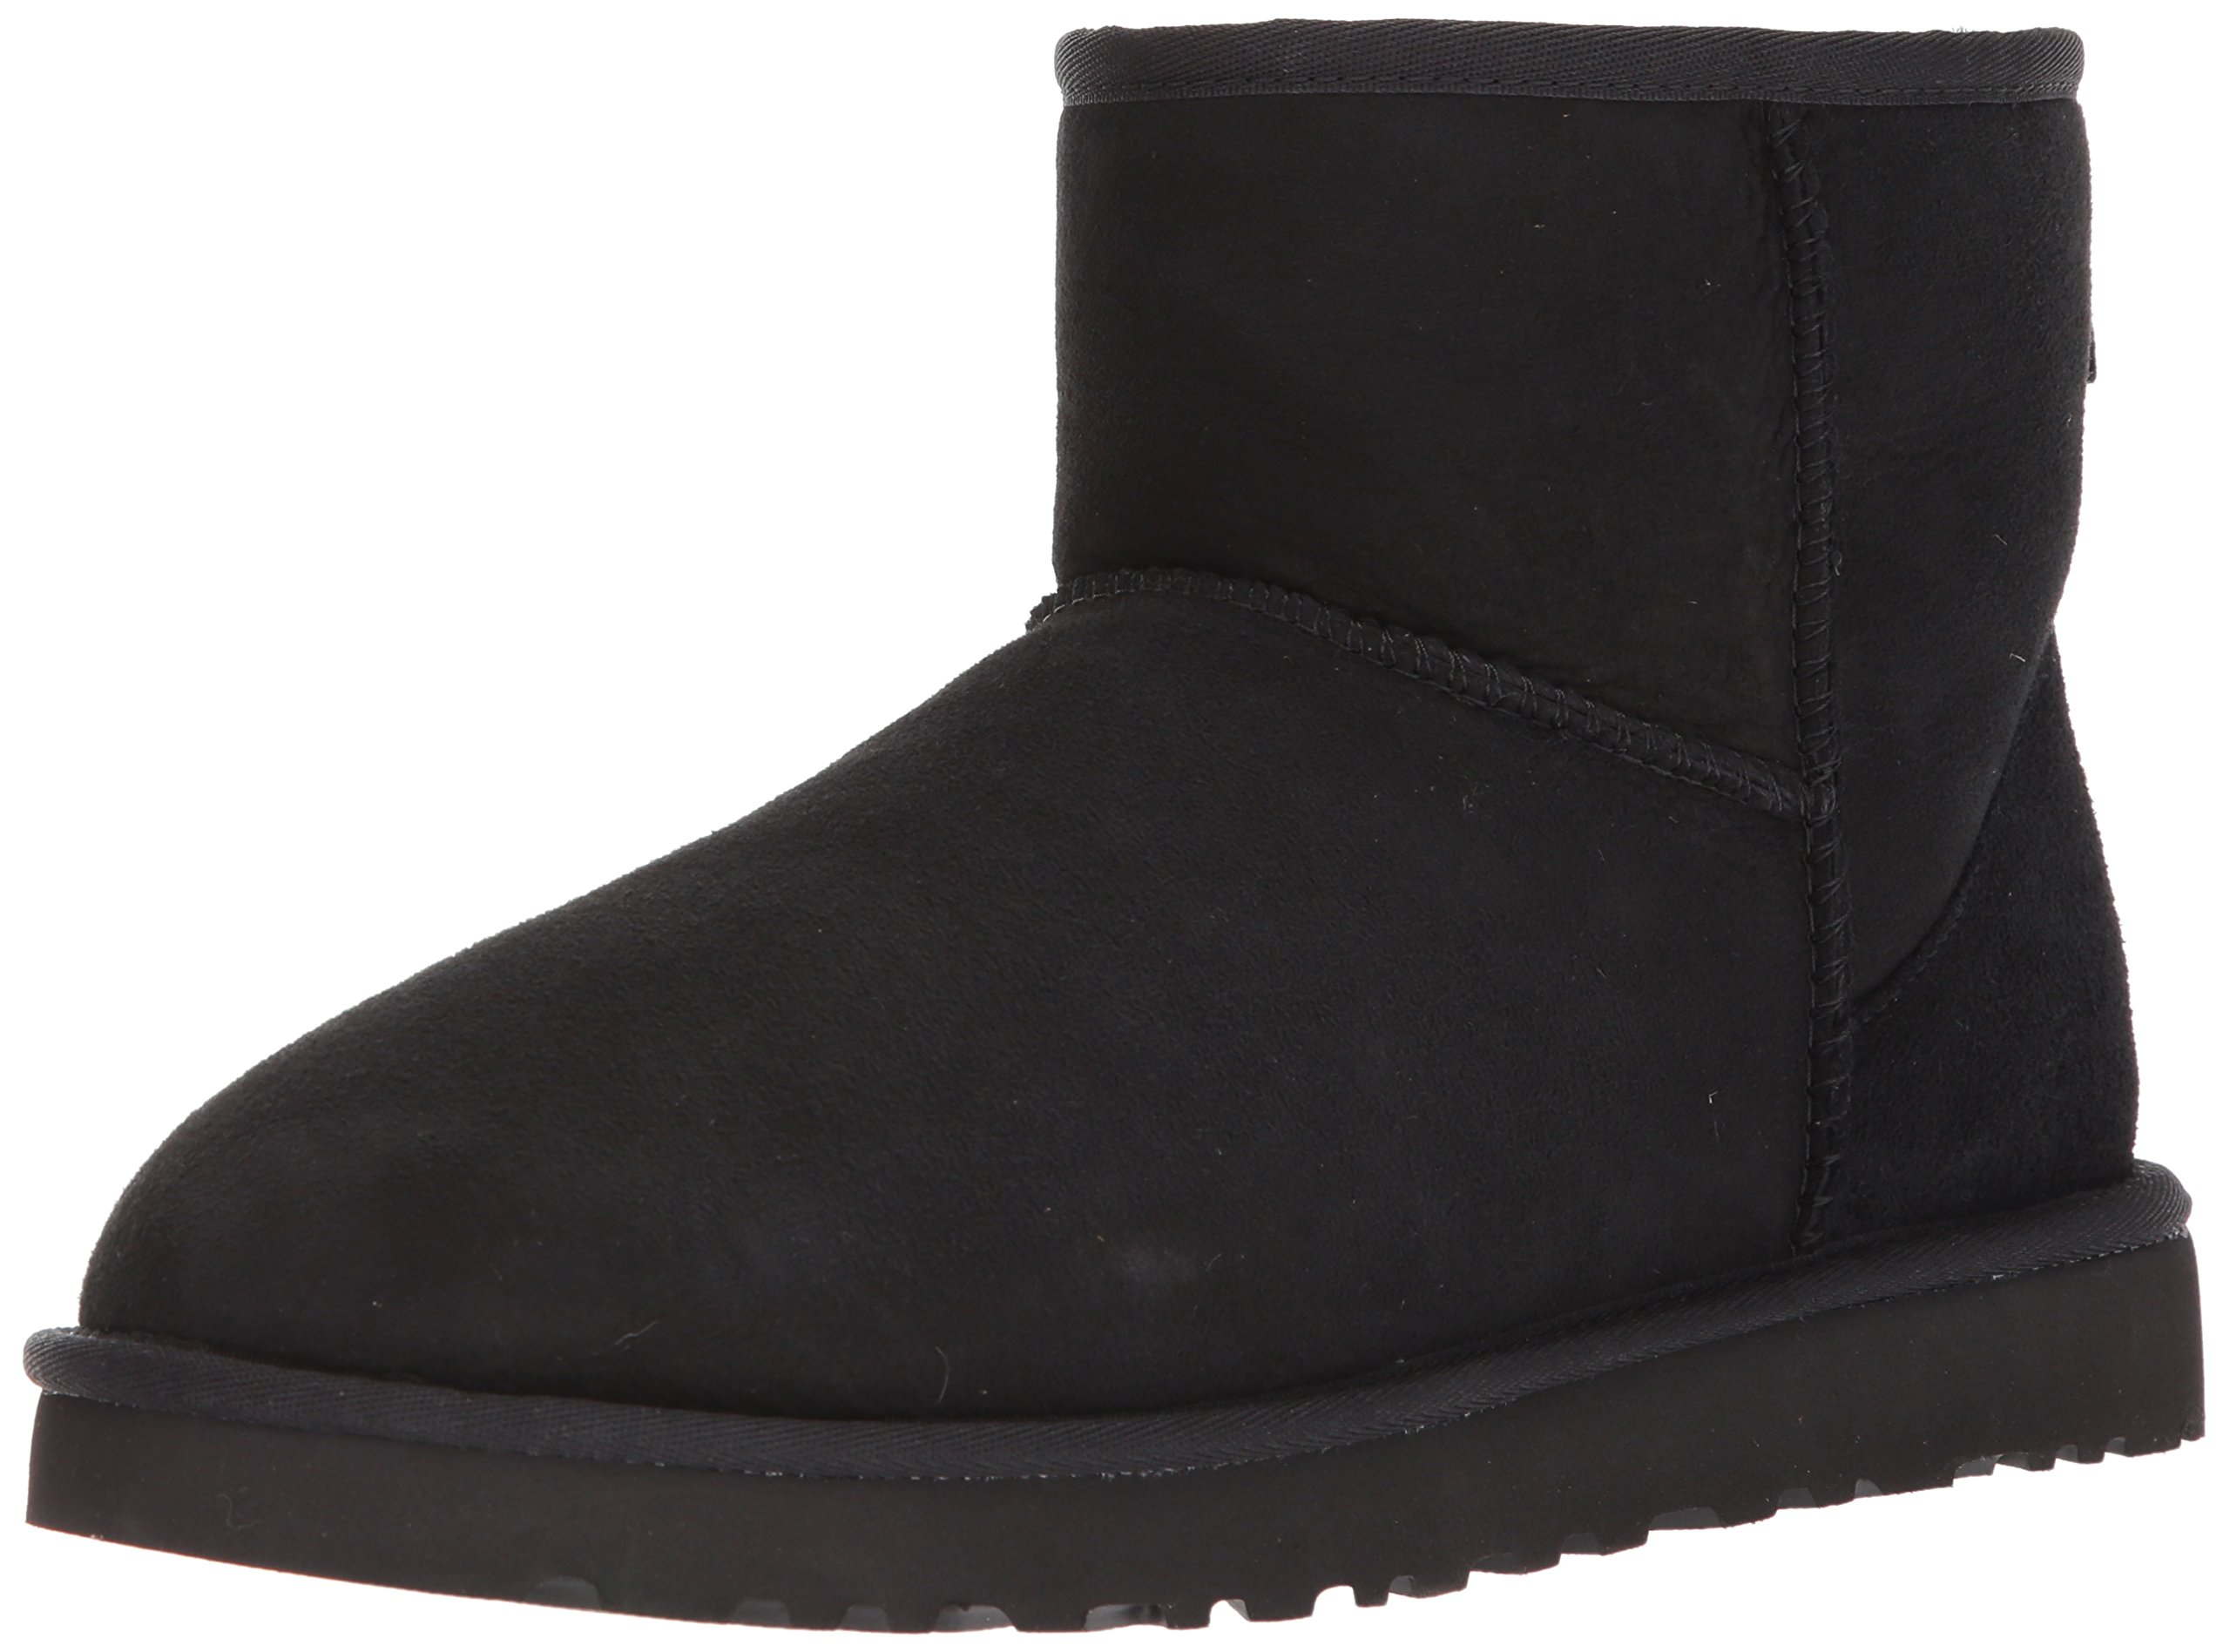 Ugg Men's Classic Mini Winter Boot, Black, 9 US/9 M US